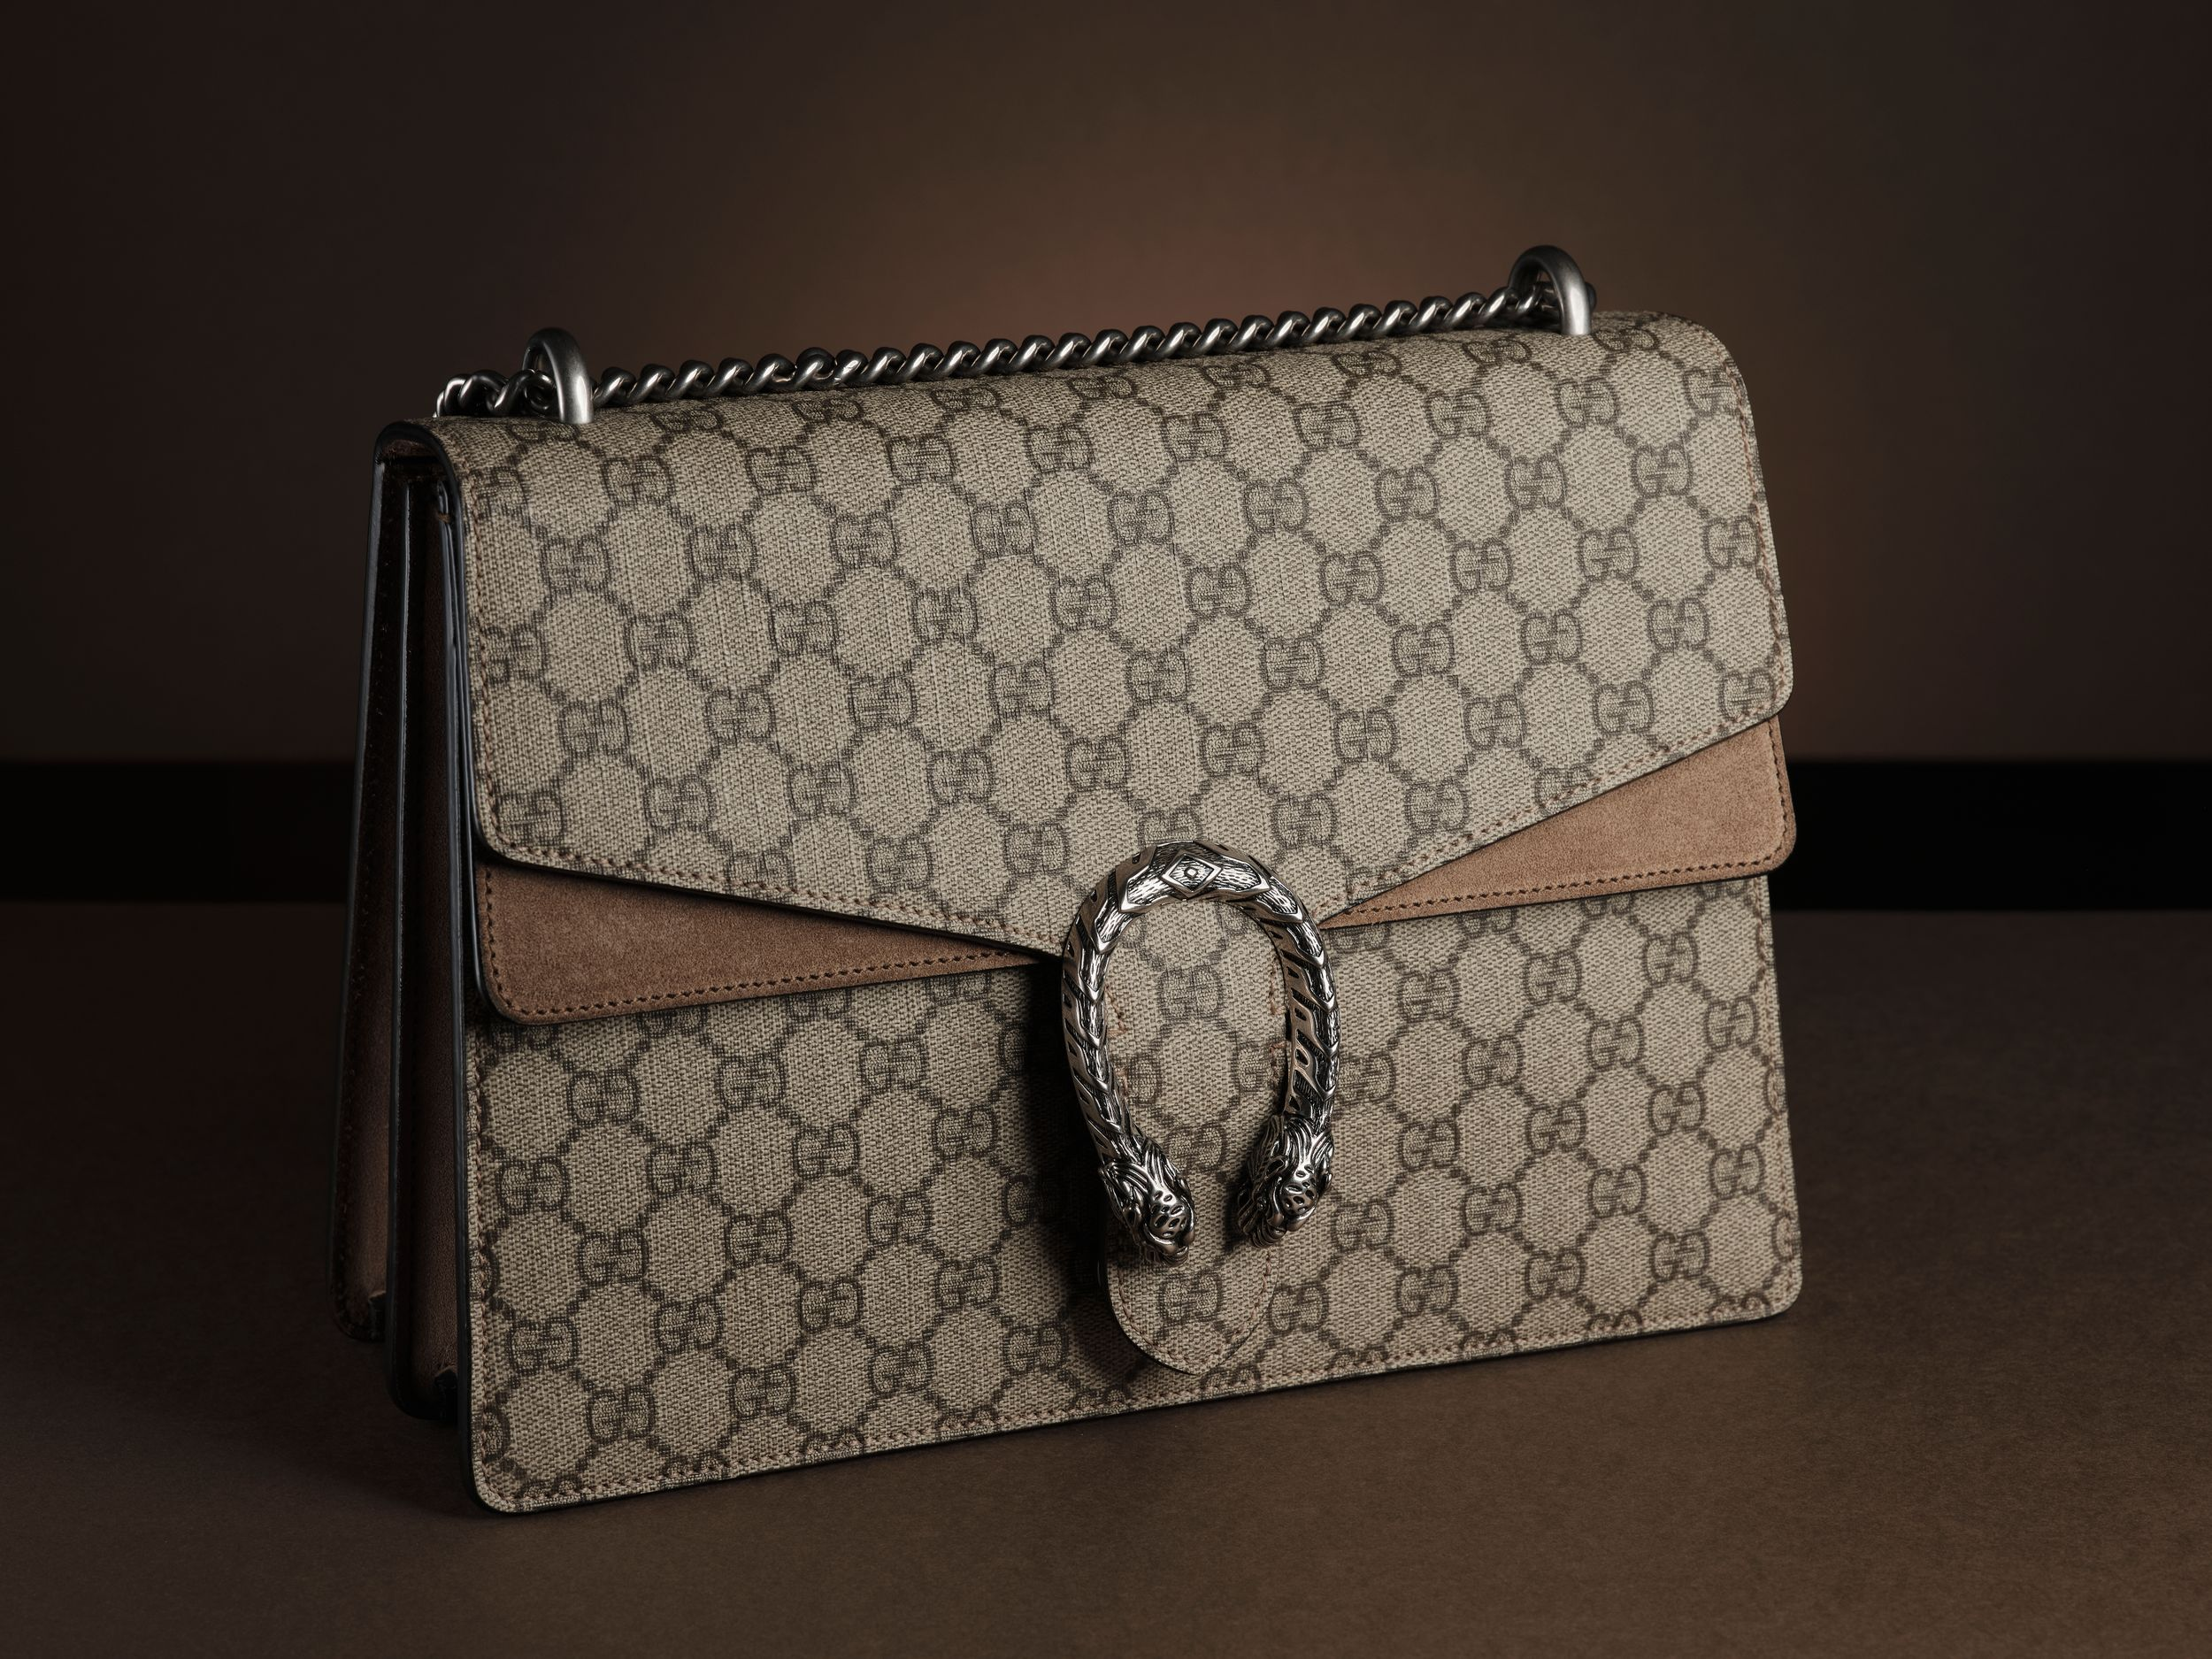 gucci handbag alan conteh product photography